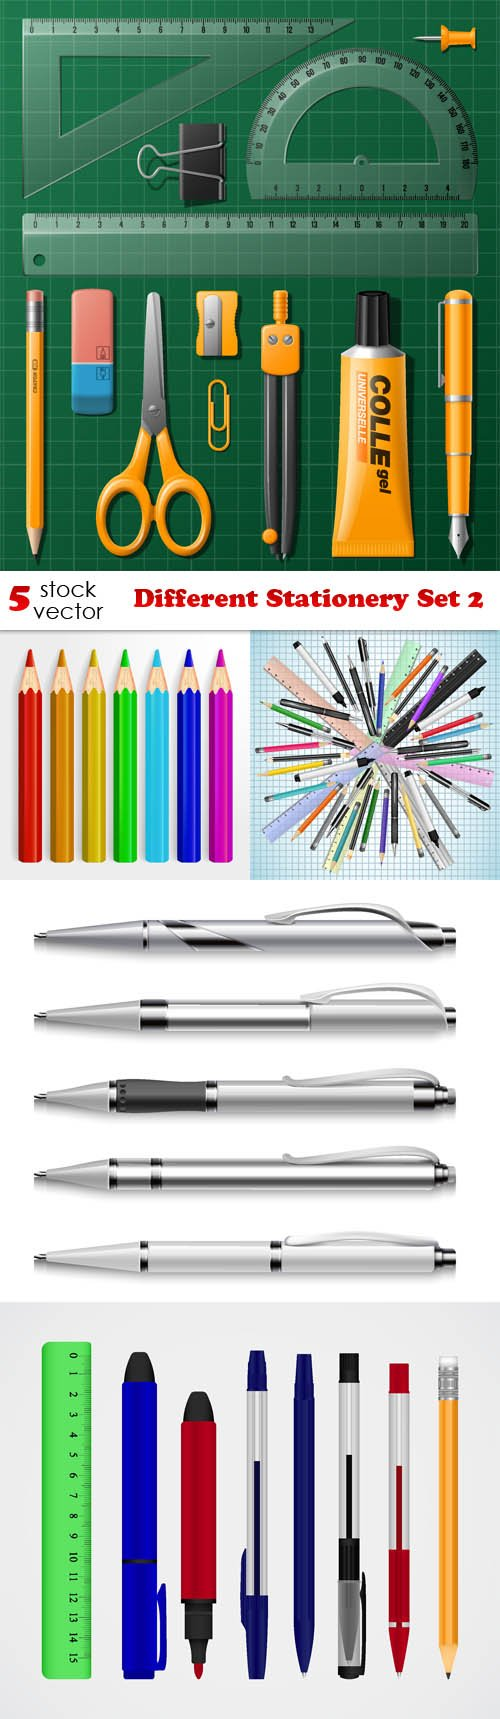 Vectors - Different Stationery Set 2